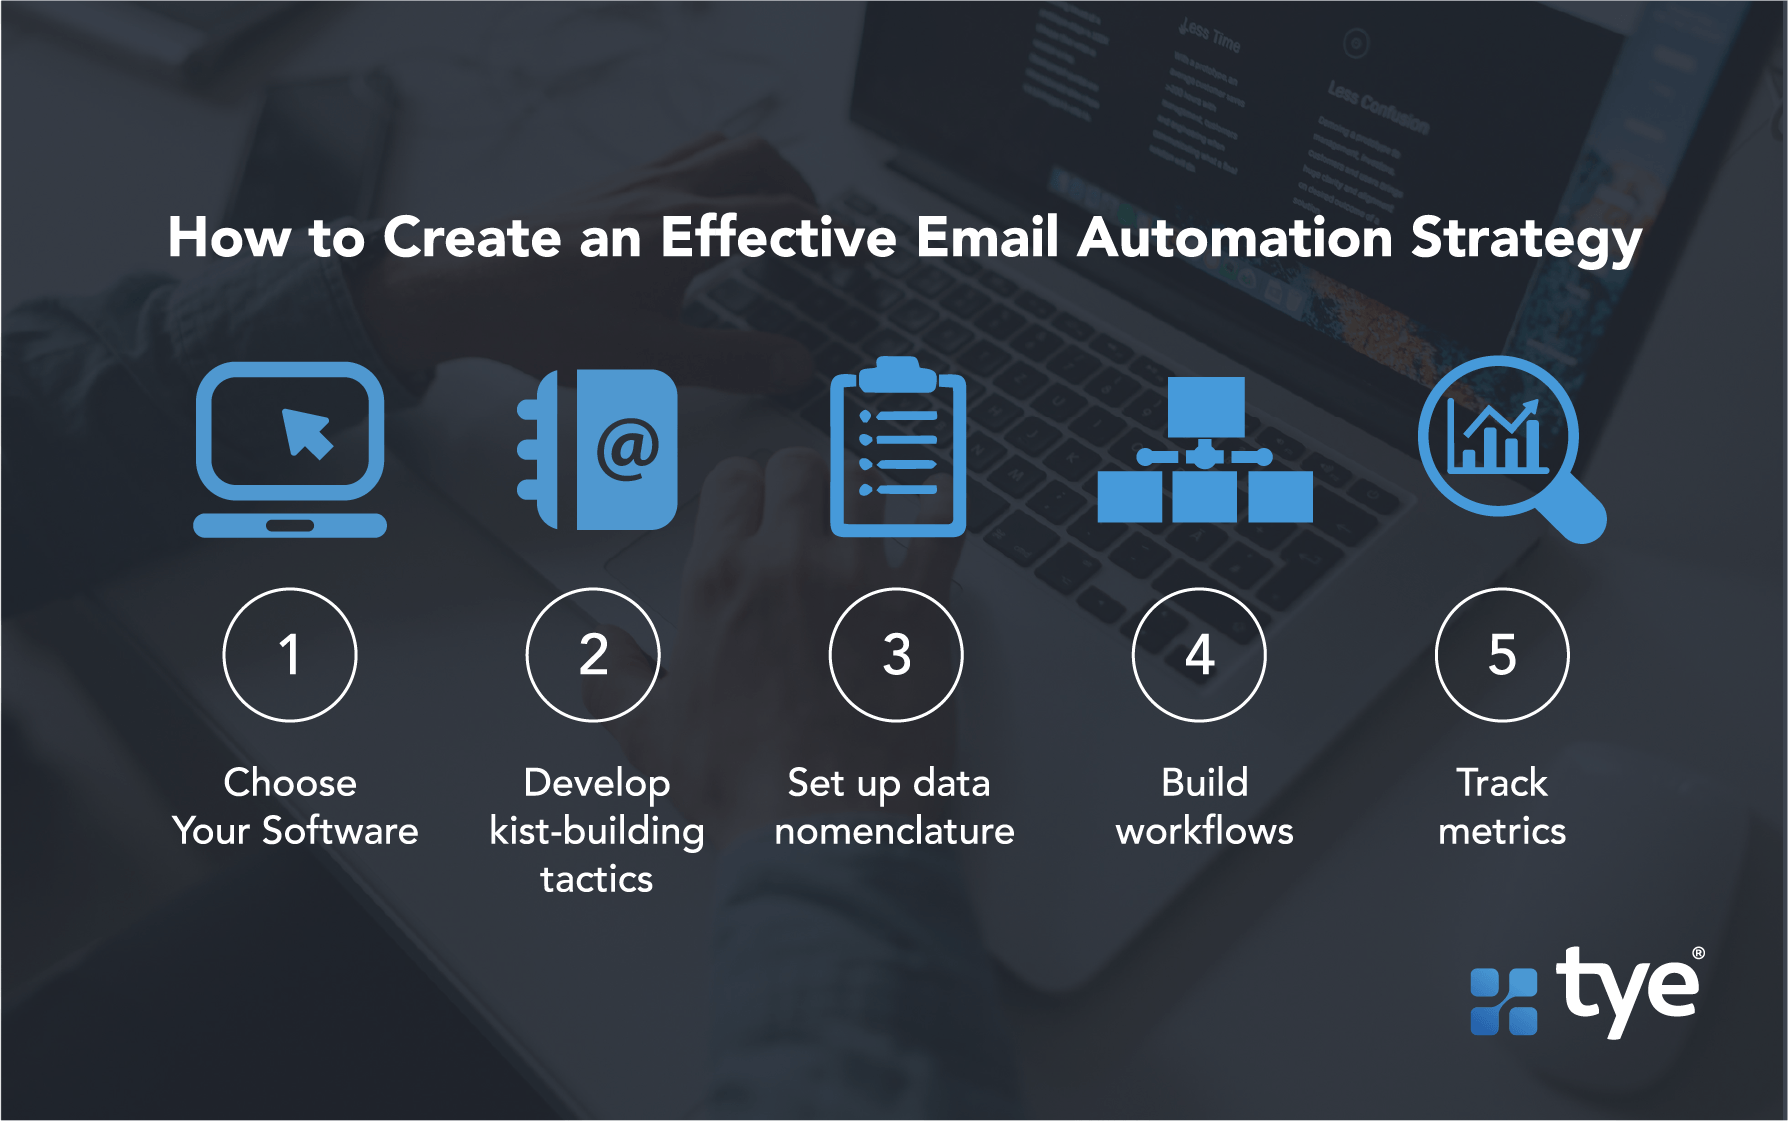 Graphic explaining How to create an effective email automation strategy